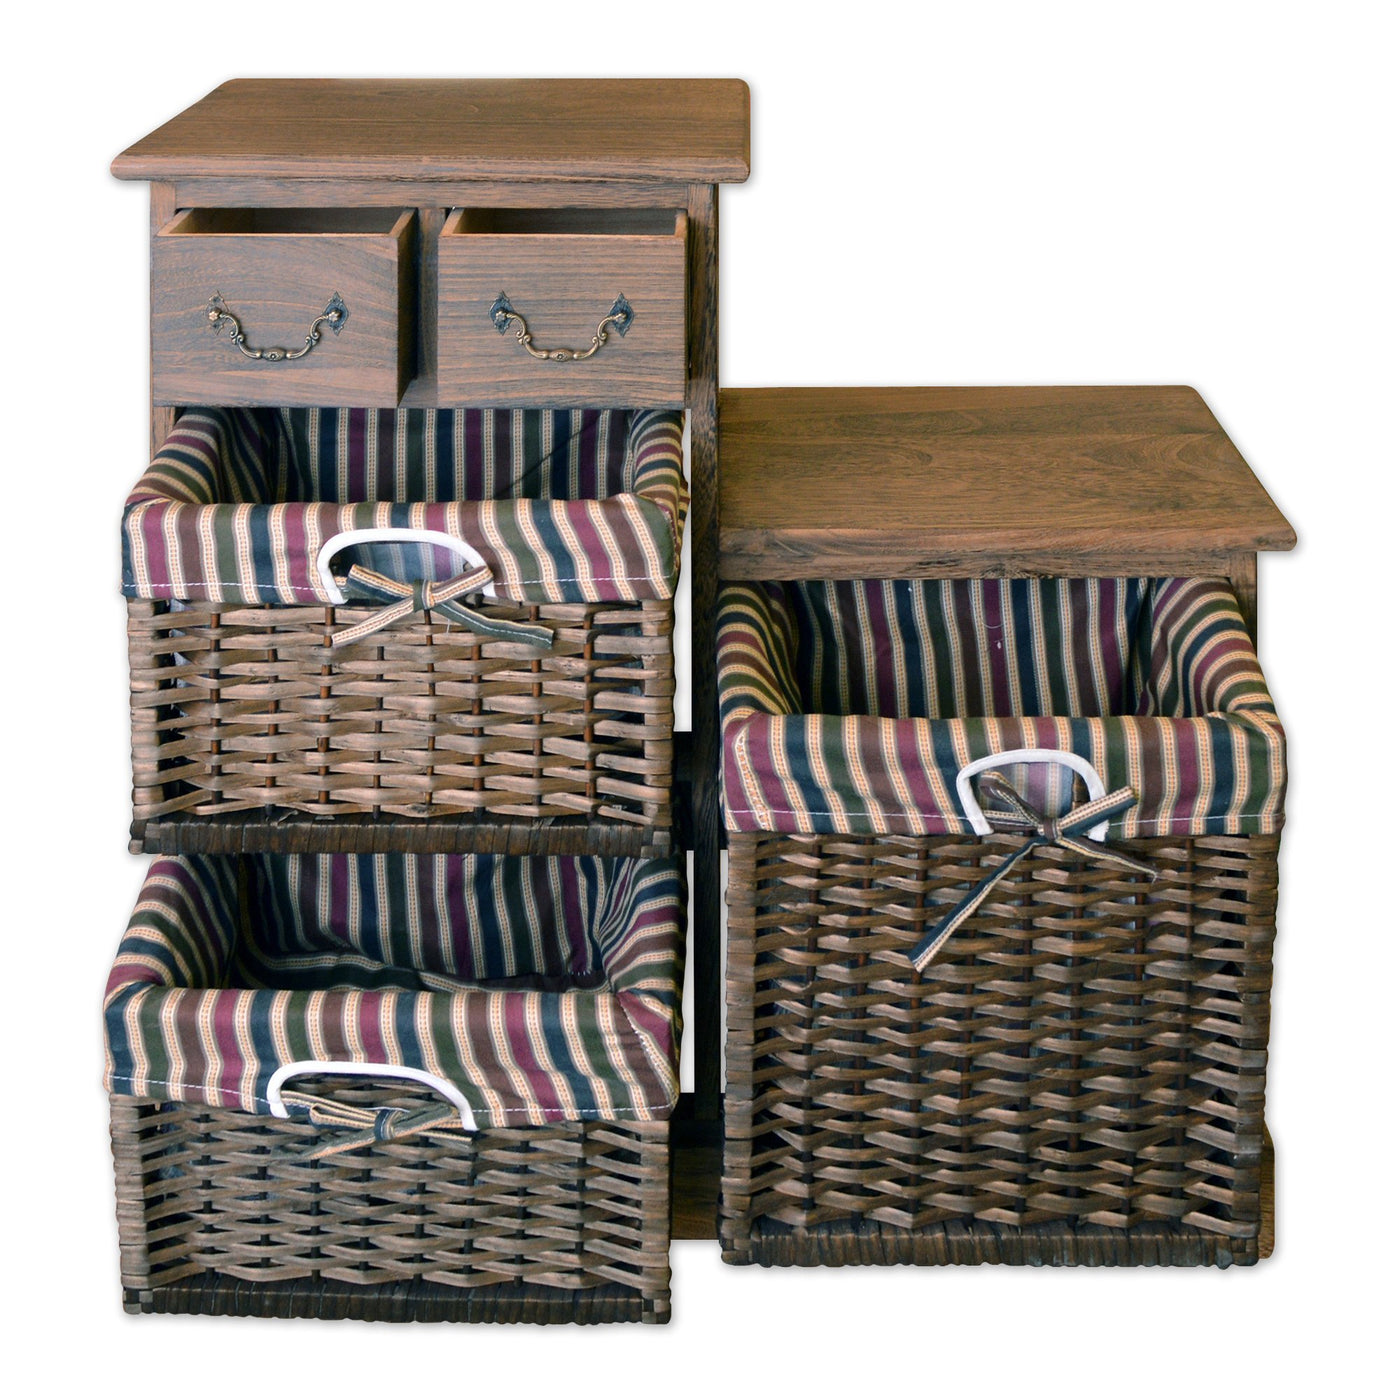 ... Furniture - 28  Wooden Storage Cabinet With 2 Drawers And 3 Rattan Baskets In Antique ...  sc 1 st  Homenique.net & Storage Cabinet with 2 Drawers u0026 3 Wicker Baskets - 28